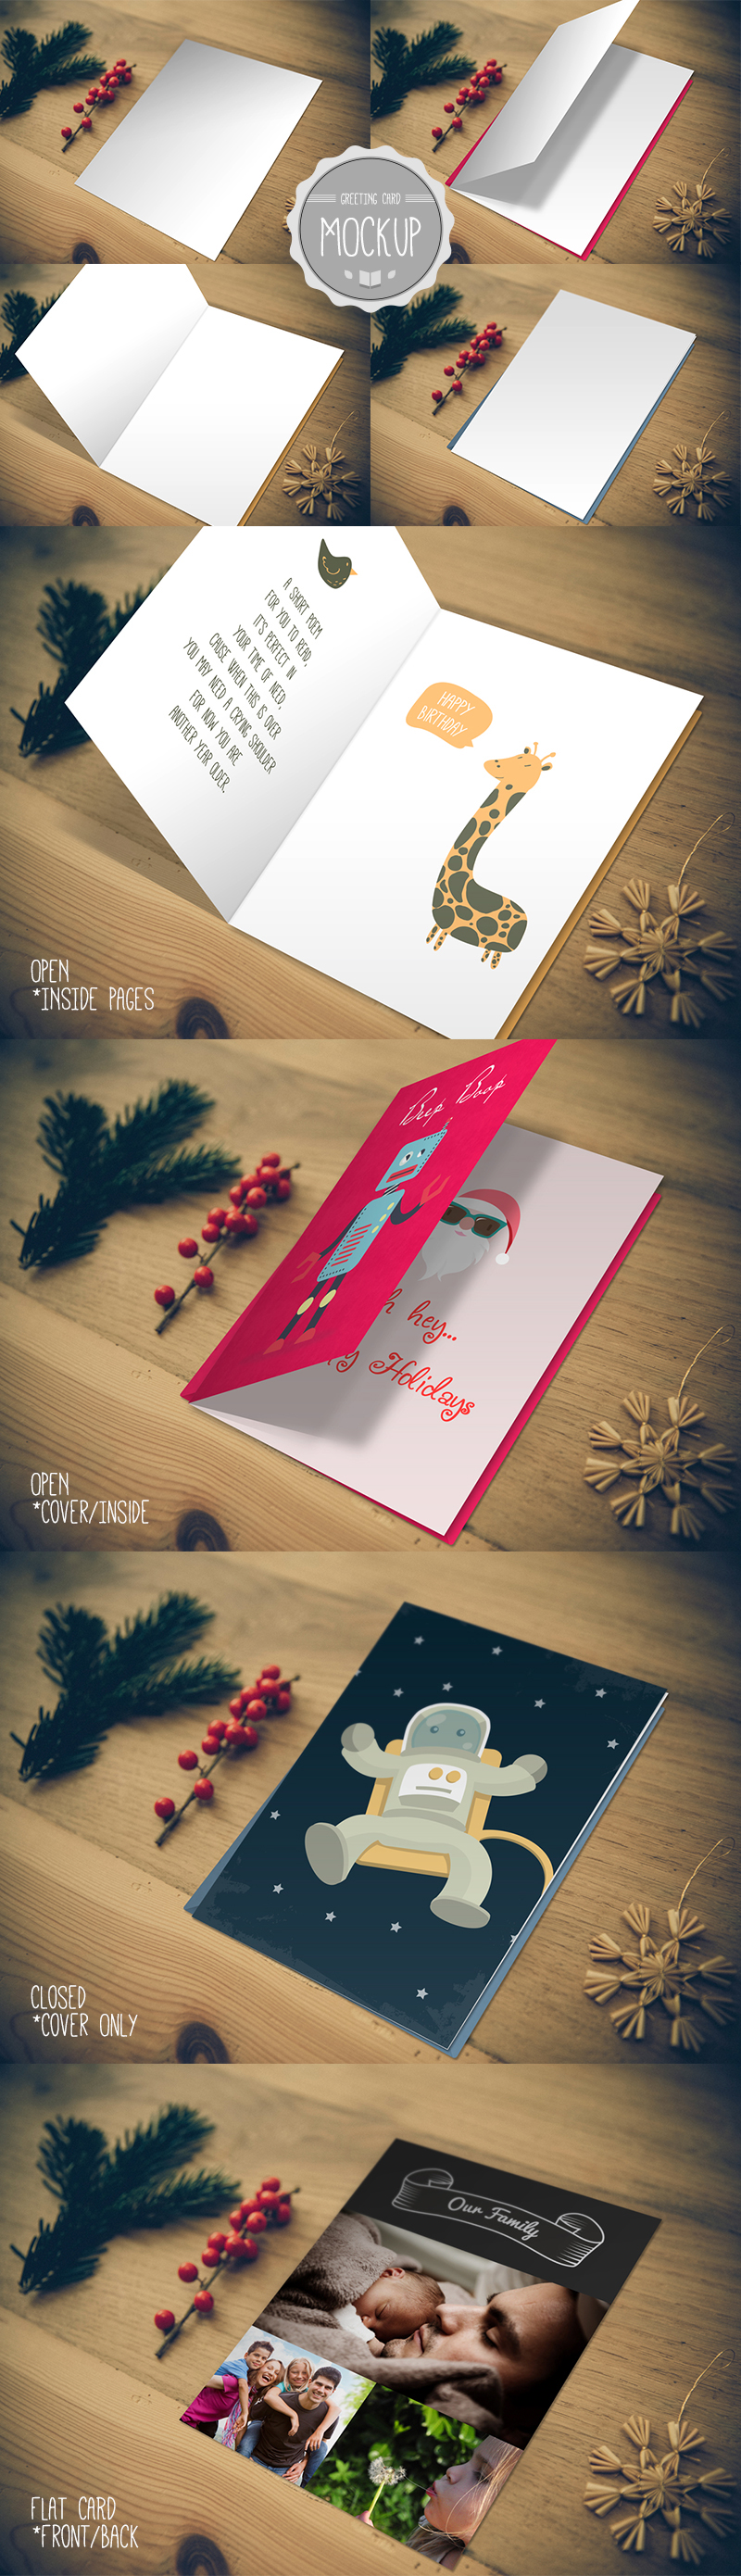 Greeting card mockup photoshop psd template on behance m4hsunfo